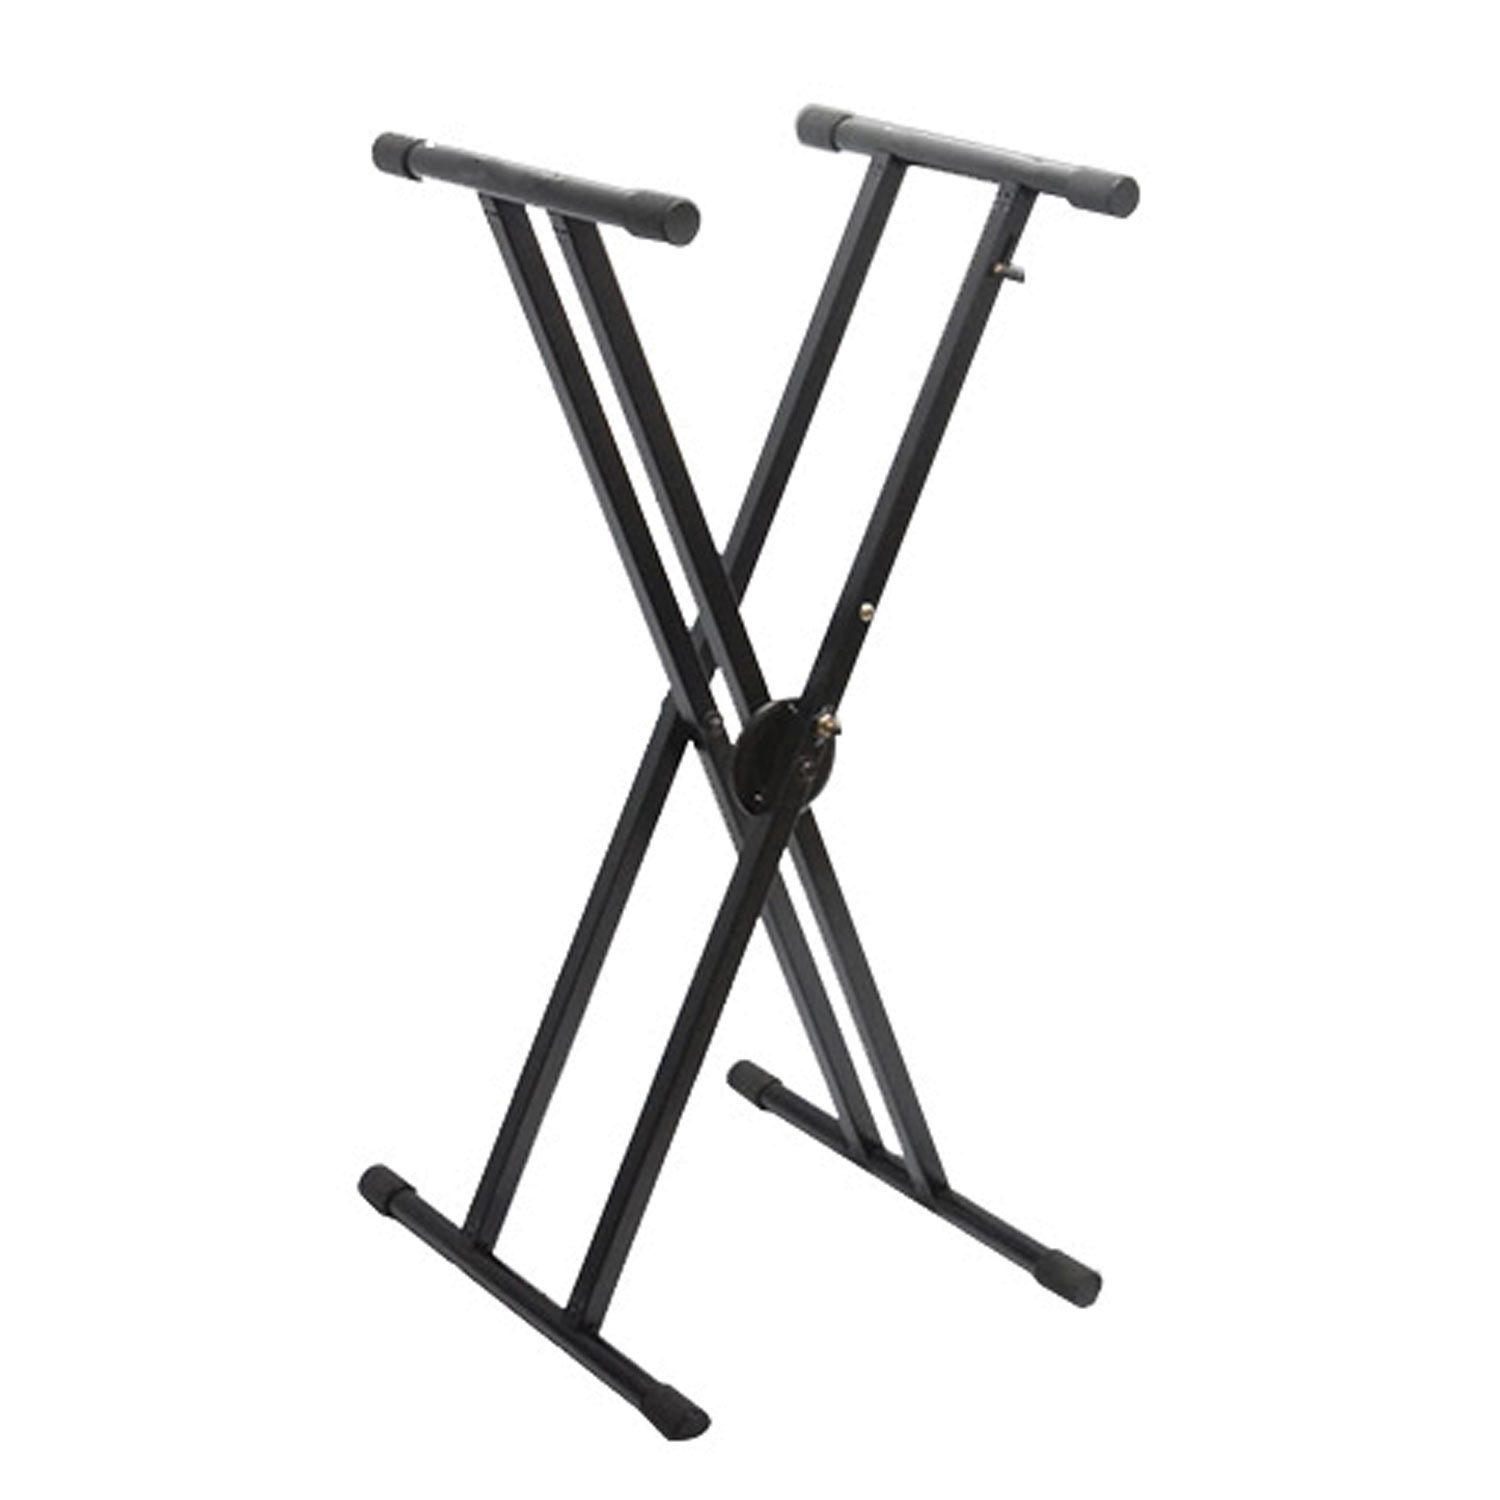 Keyboard Stand double heavy duty TEK audio KS340